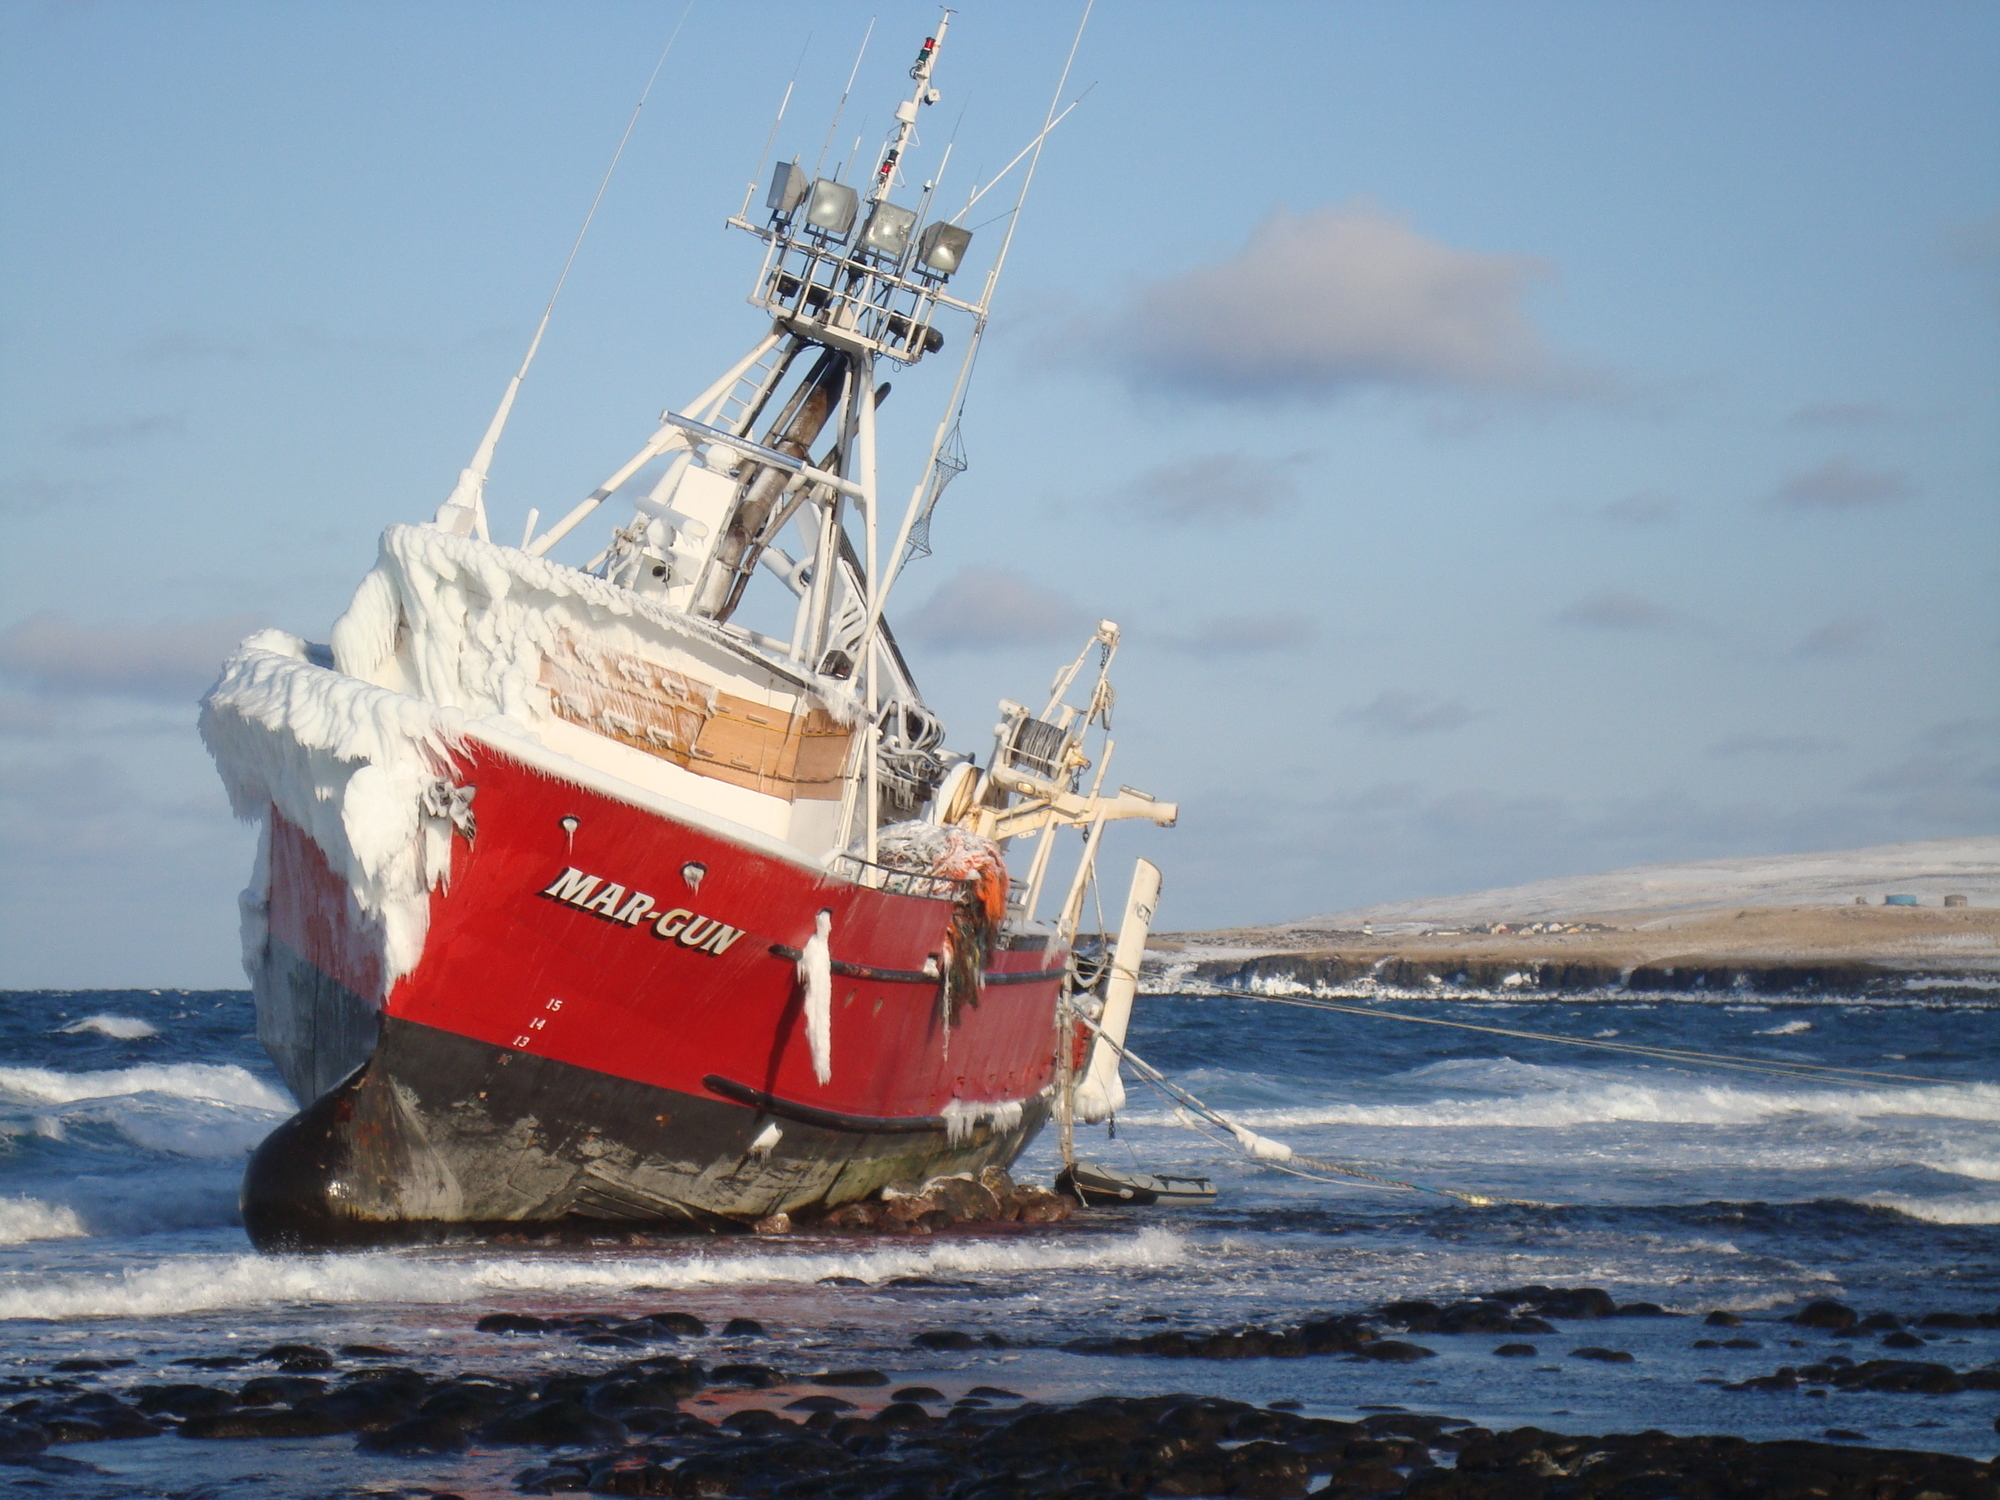 The fishing vessel Mar-Gun sits grounded with heavy ice accumulation on the north end of St. George Island in Alaska, April 11, 2009. A vessel's center of gravity can rapidly rise when freezing spray accumulates high above the main deck. U.S. Coast Guard photo.